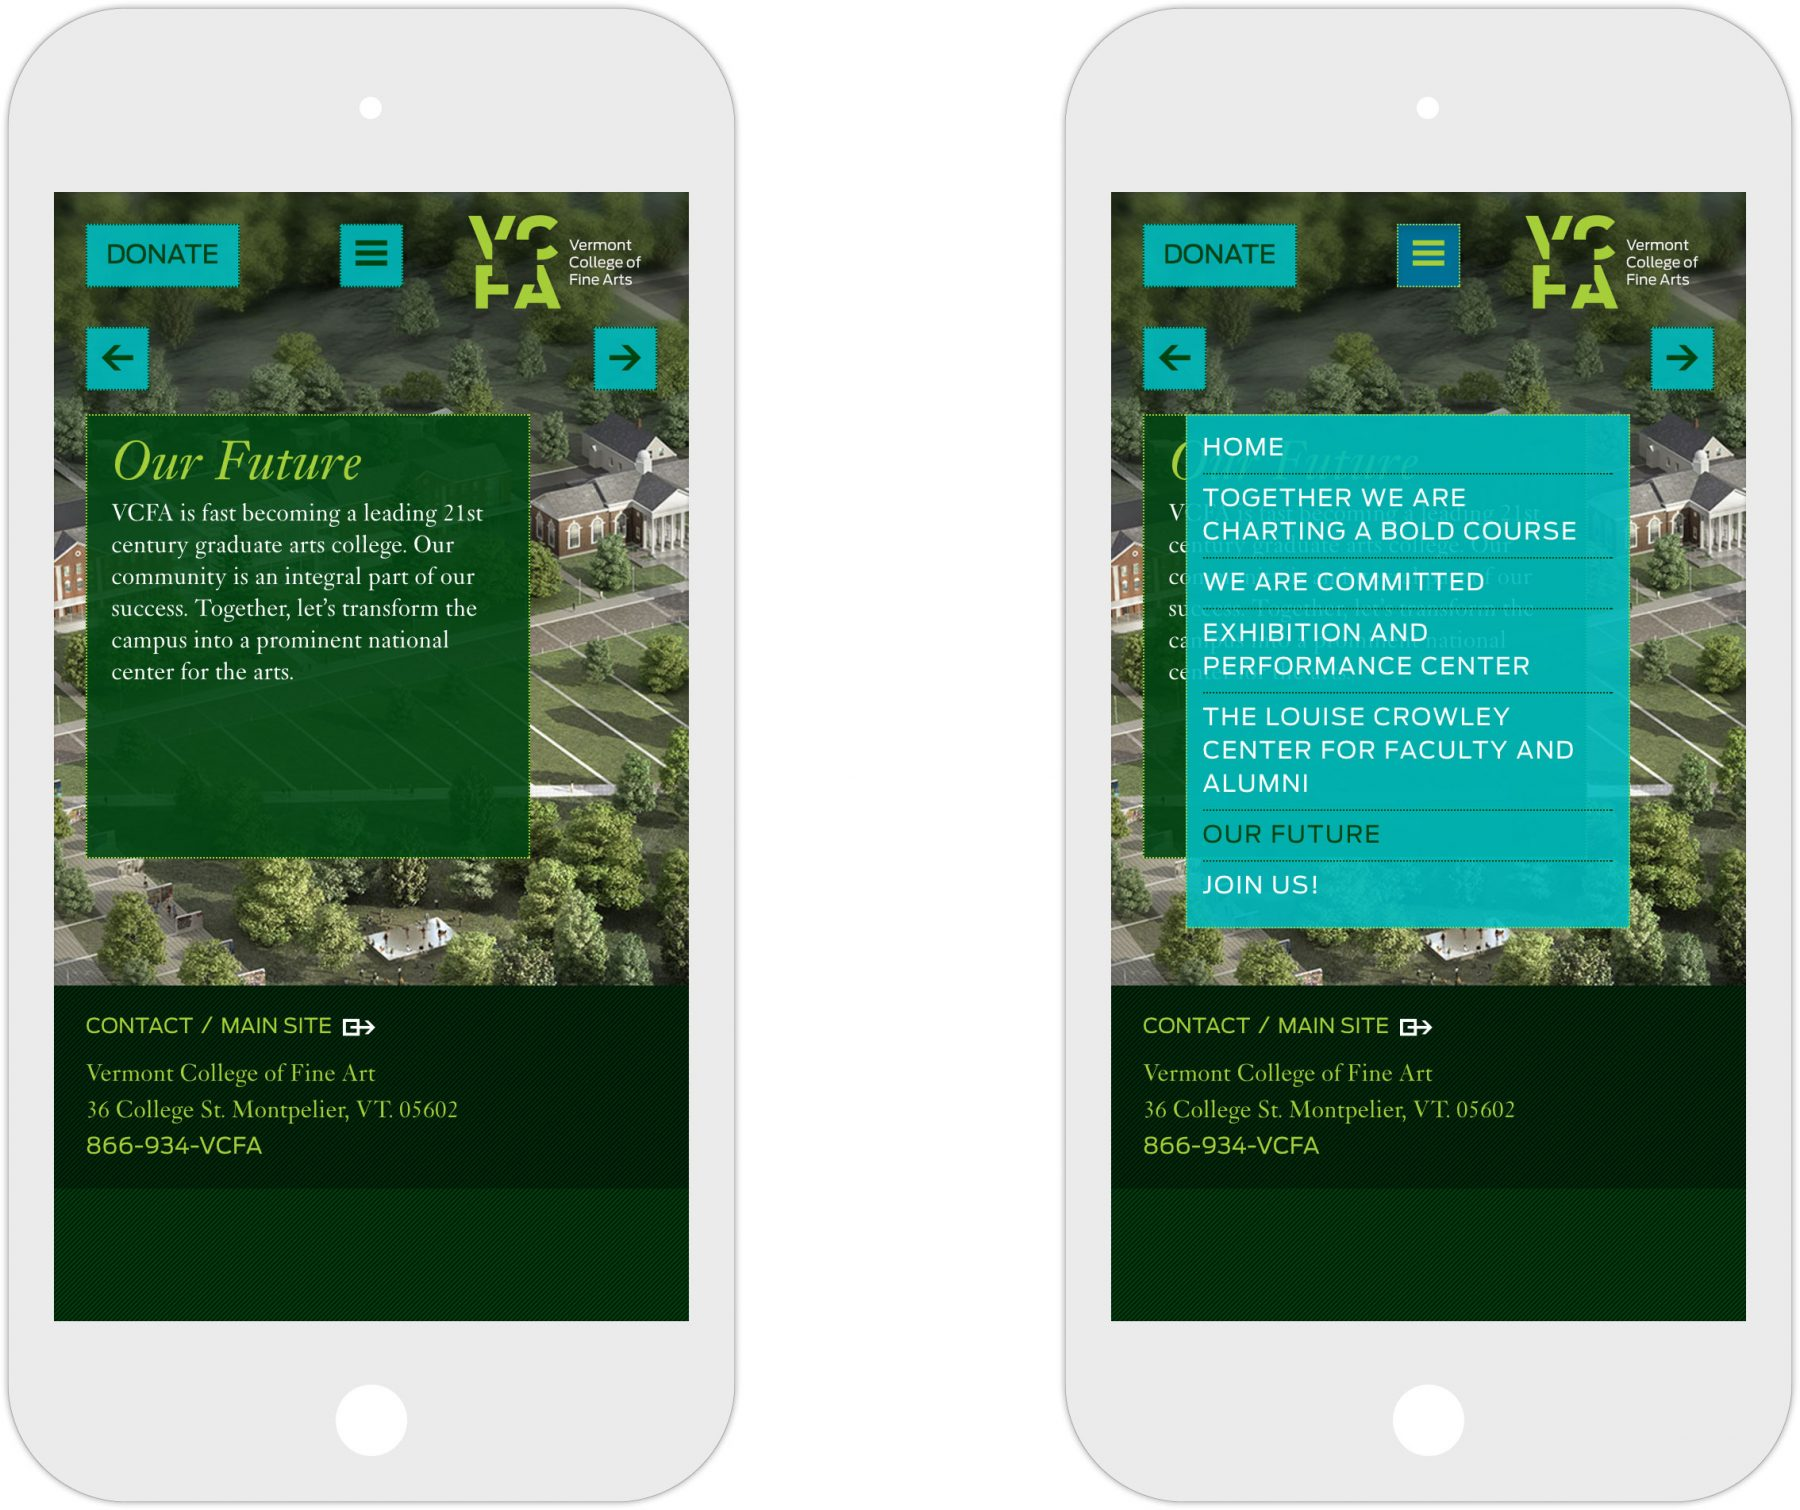 Vermont College of Fine Arts campaign homepage on mobile